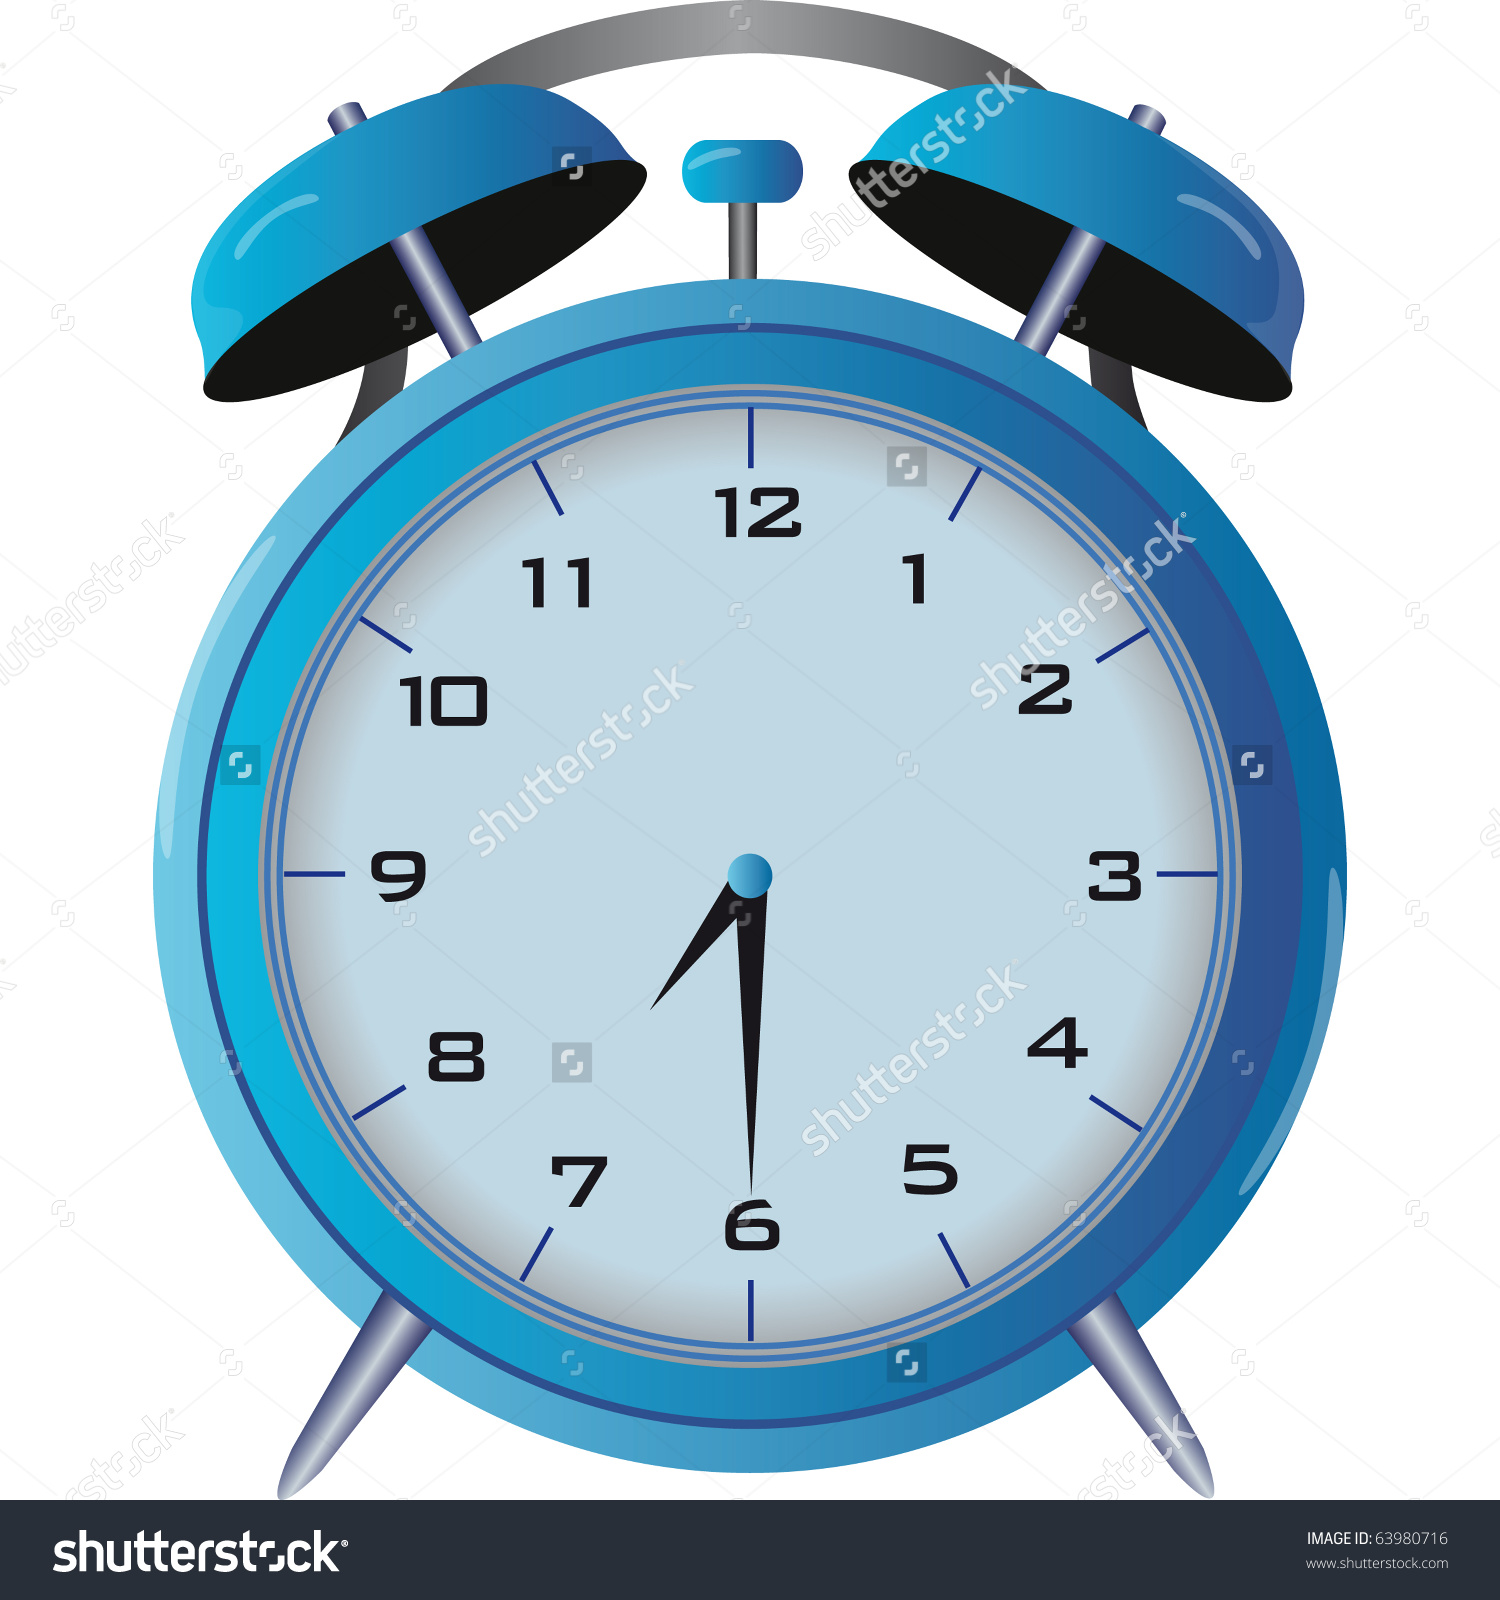 Table Clock Builtin Alarm Nuisance Stock Vector 63980716.